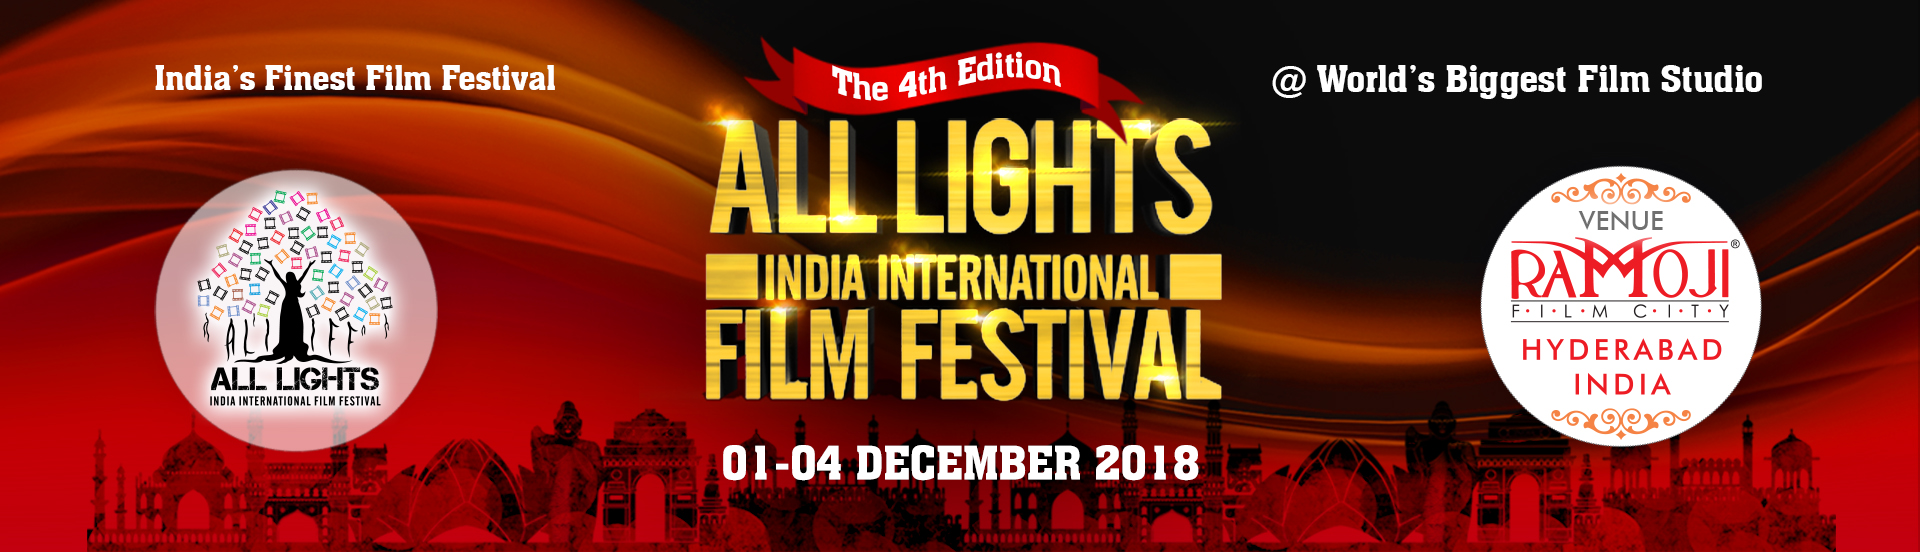 ALIIFF - India International Film Festival - Hyderabad Events